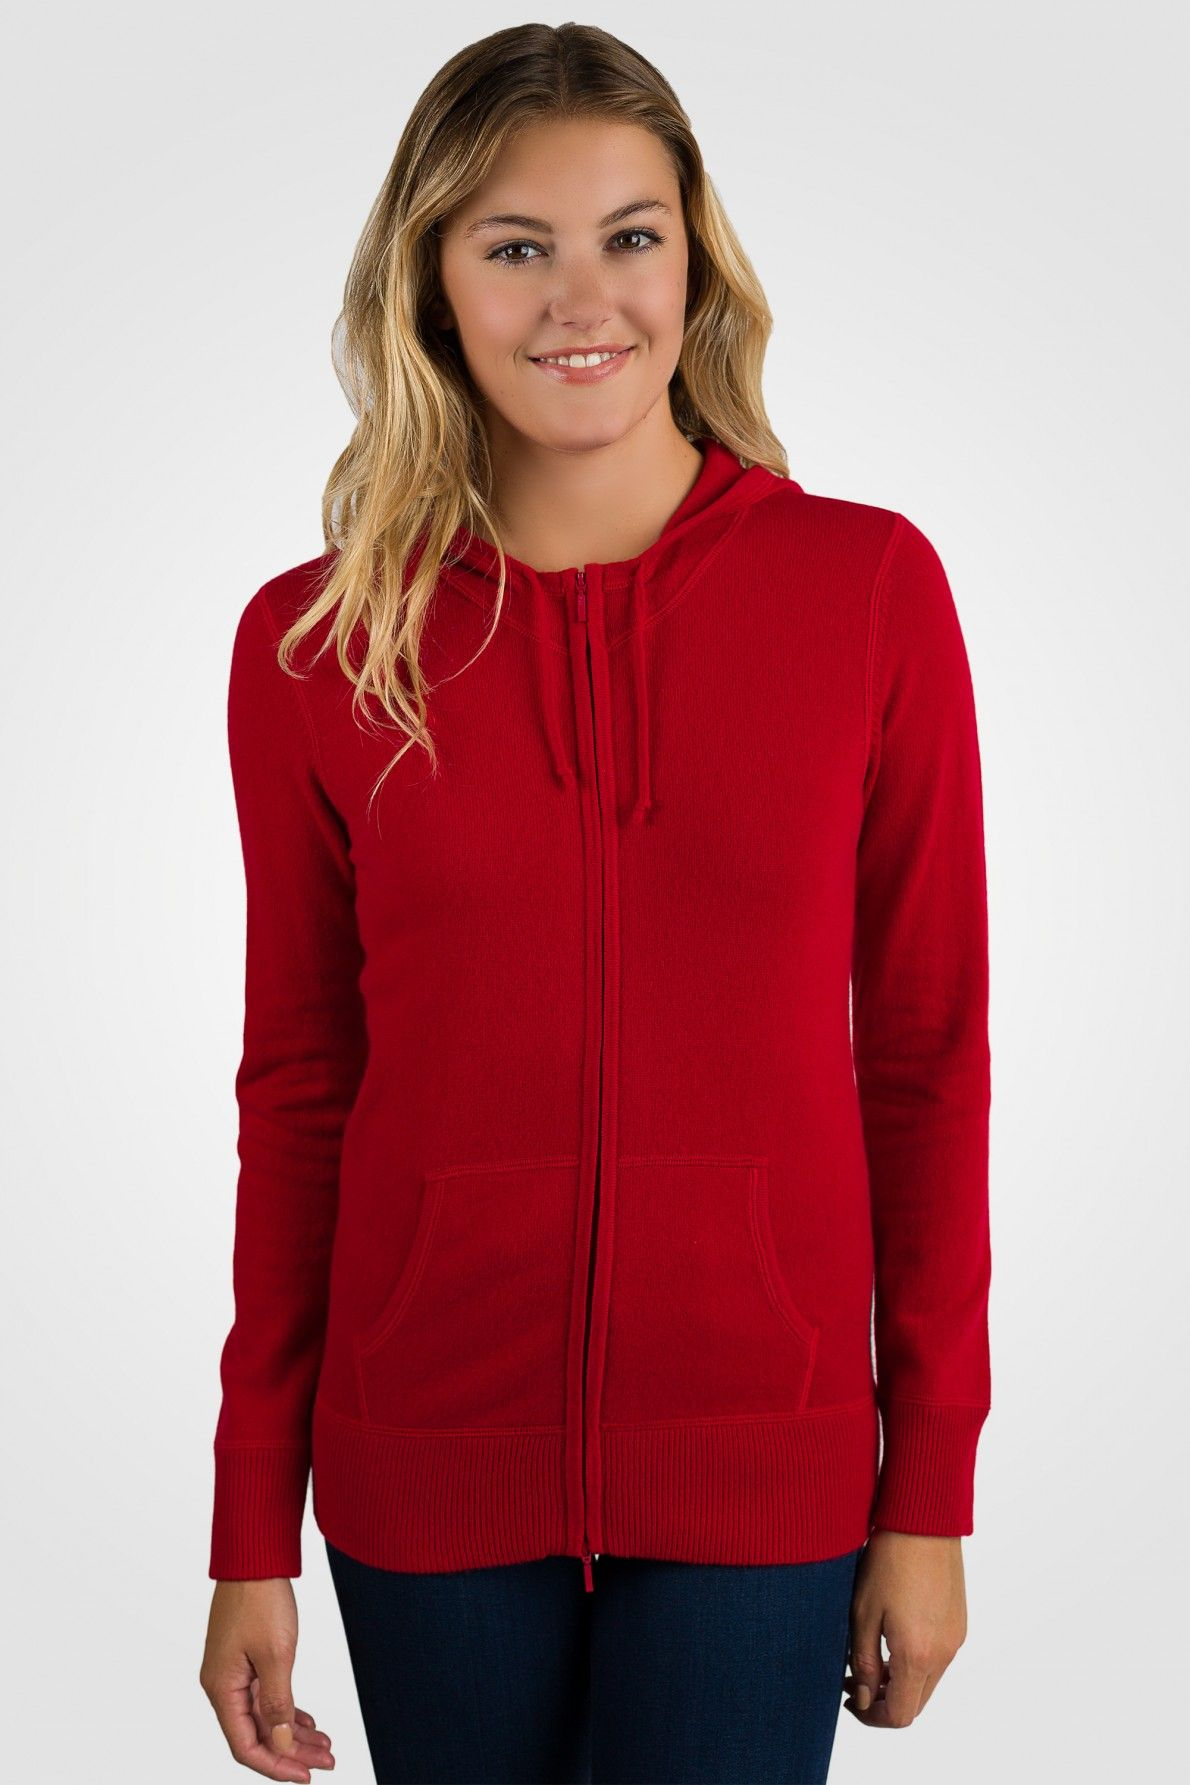 Red Cashmere Long Sleeve Zip Hoodie Cardigan Sweater[ JCashmere ...